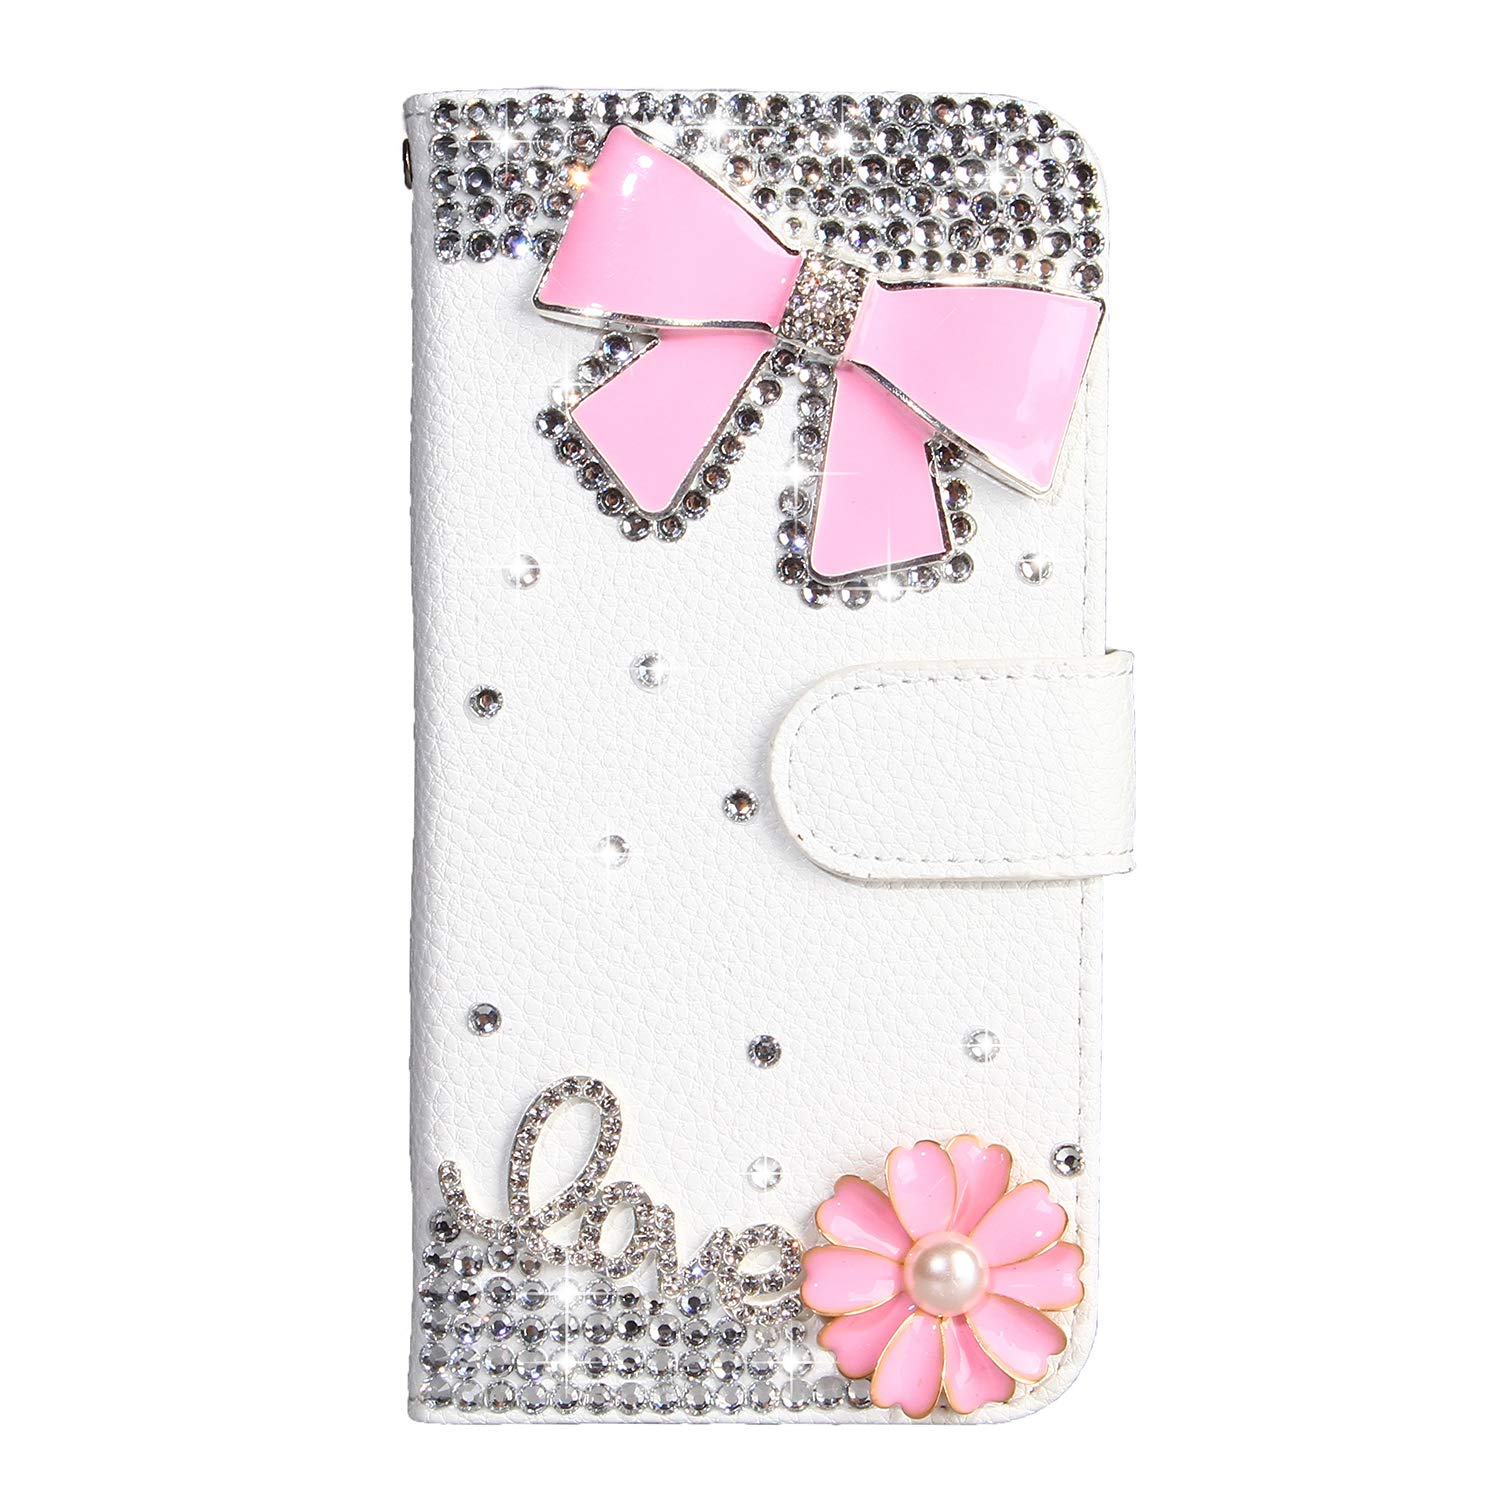 Crystal Wallet Case for Samsung Galaxy A40,Aoucase Stylish Luxury 3D Handmade Pink Bowknot Design Bling Pocket Purse Soft Rubber Stand White Leather Case with Black Dual-use Stylus